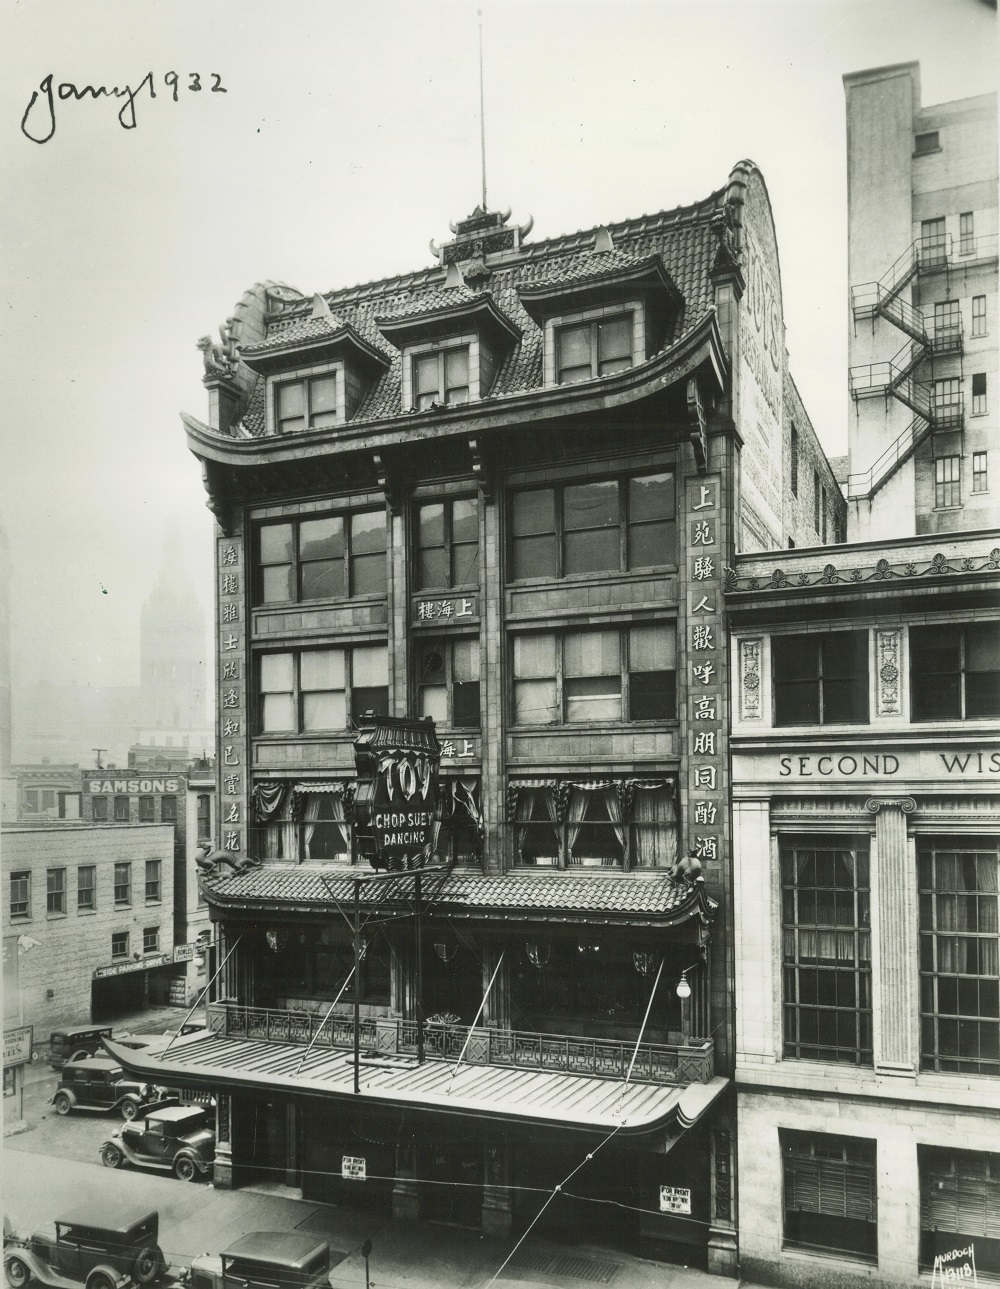 1932 photograph of the Toy Building, once located downtown at 736 N. 2nd Street. Built in 1913, the building was home to Charlie Toy's Shanghai Chinese Restaurant.